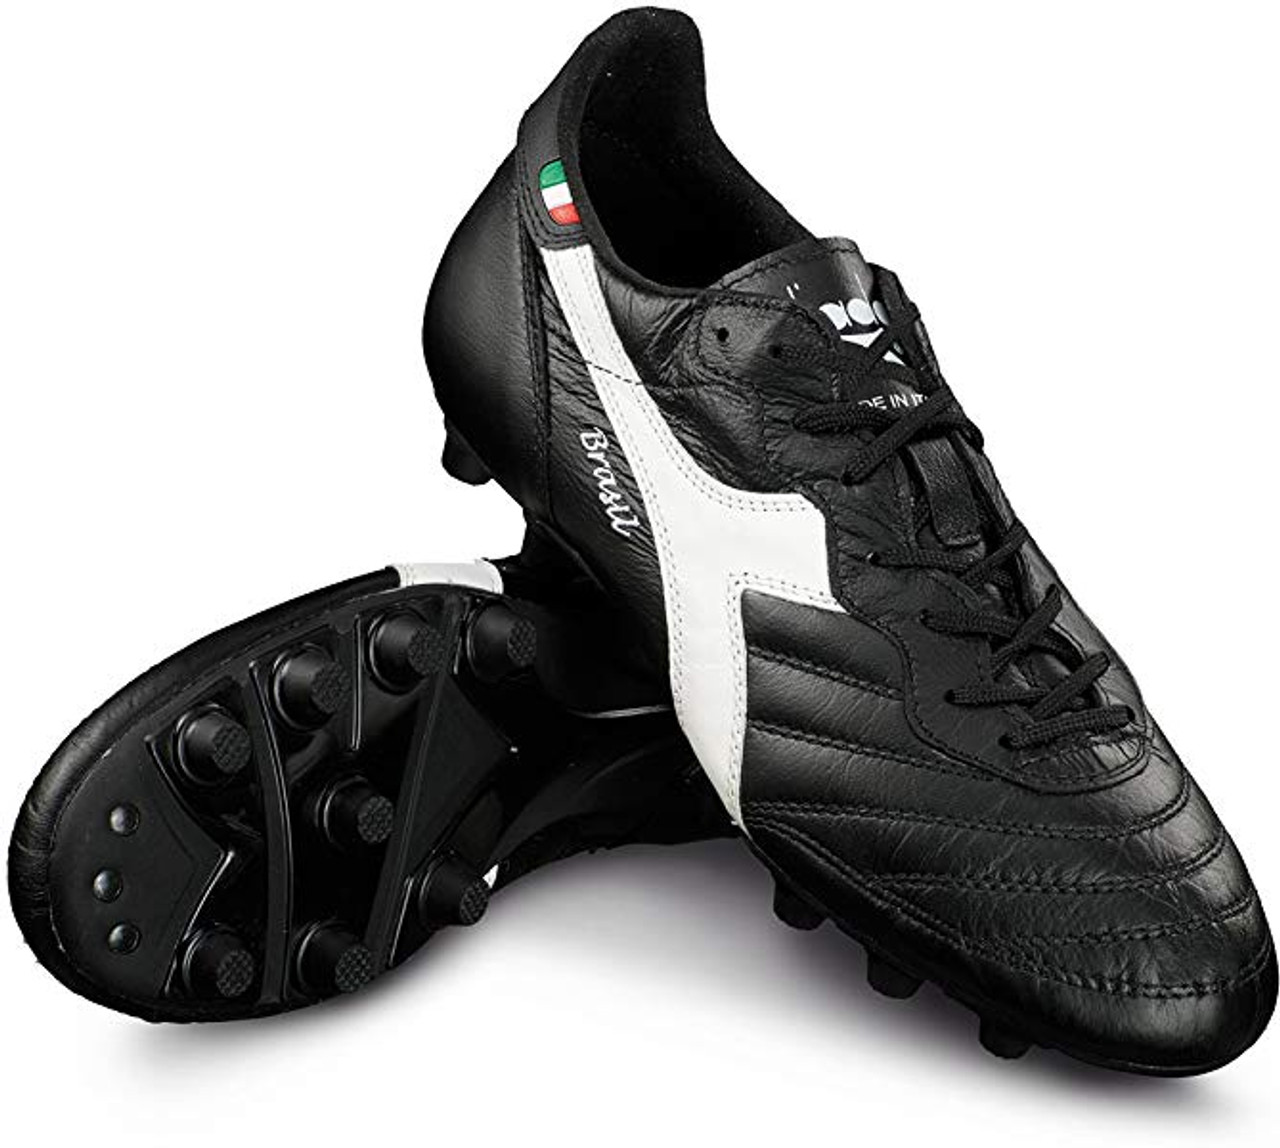 31656cf7 DIADORA BRASIL ITALY OG MD PU Soccer Cleat - Black/White